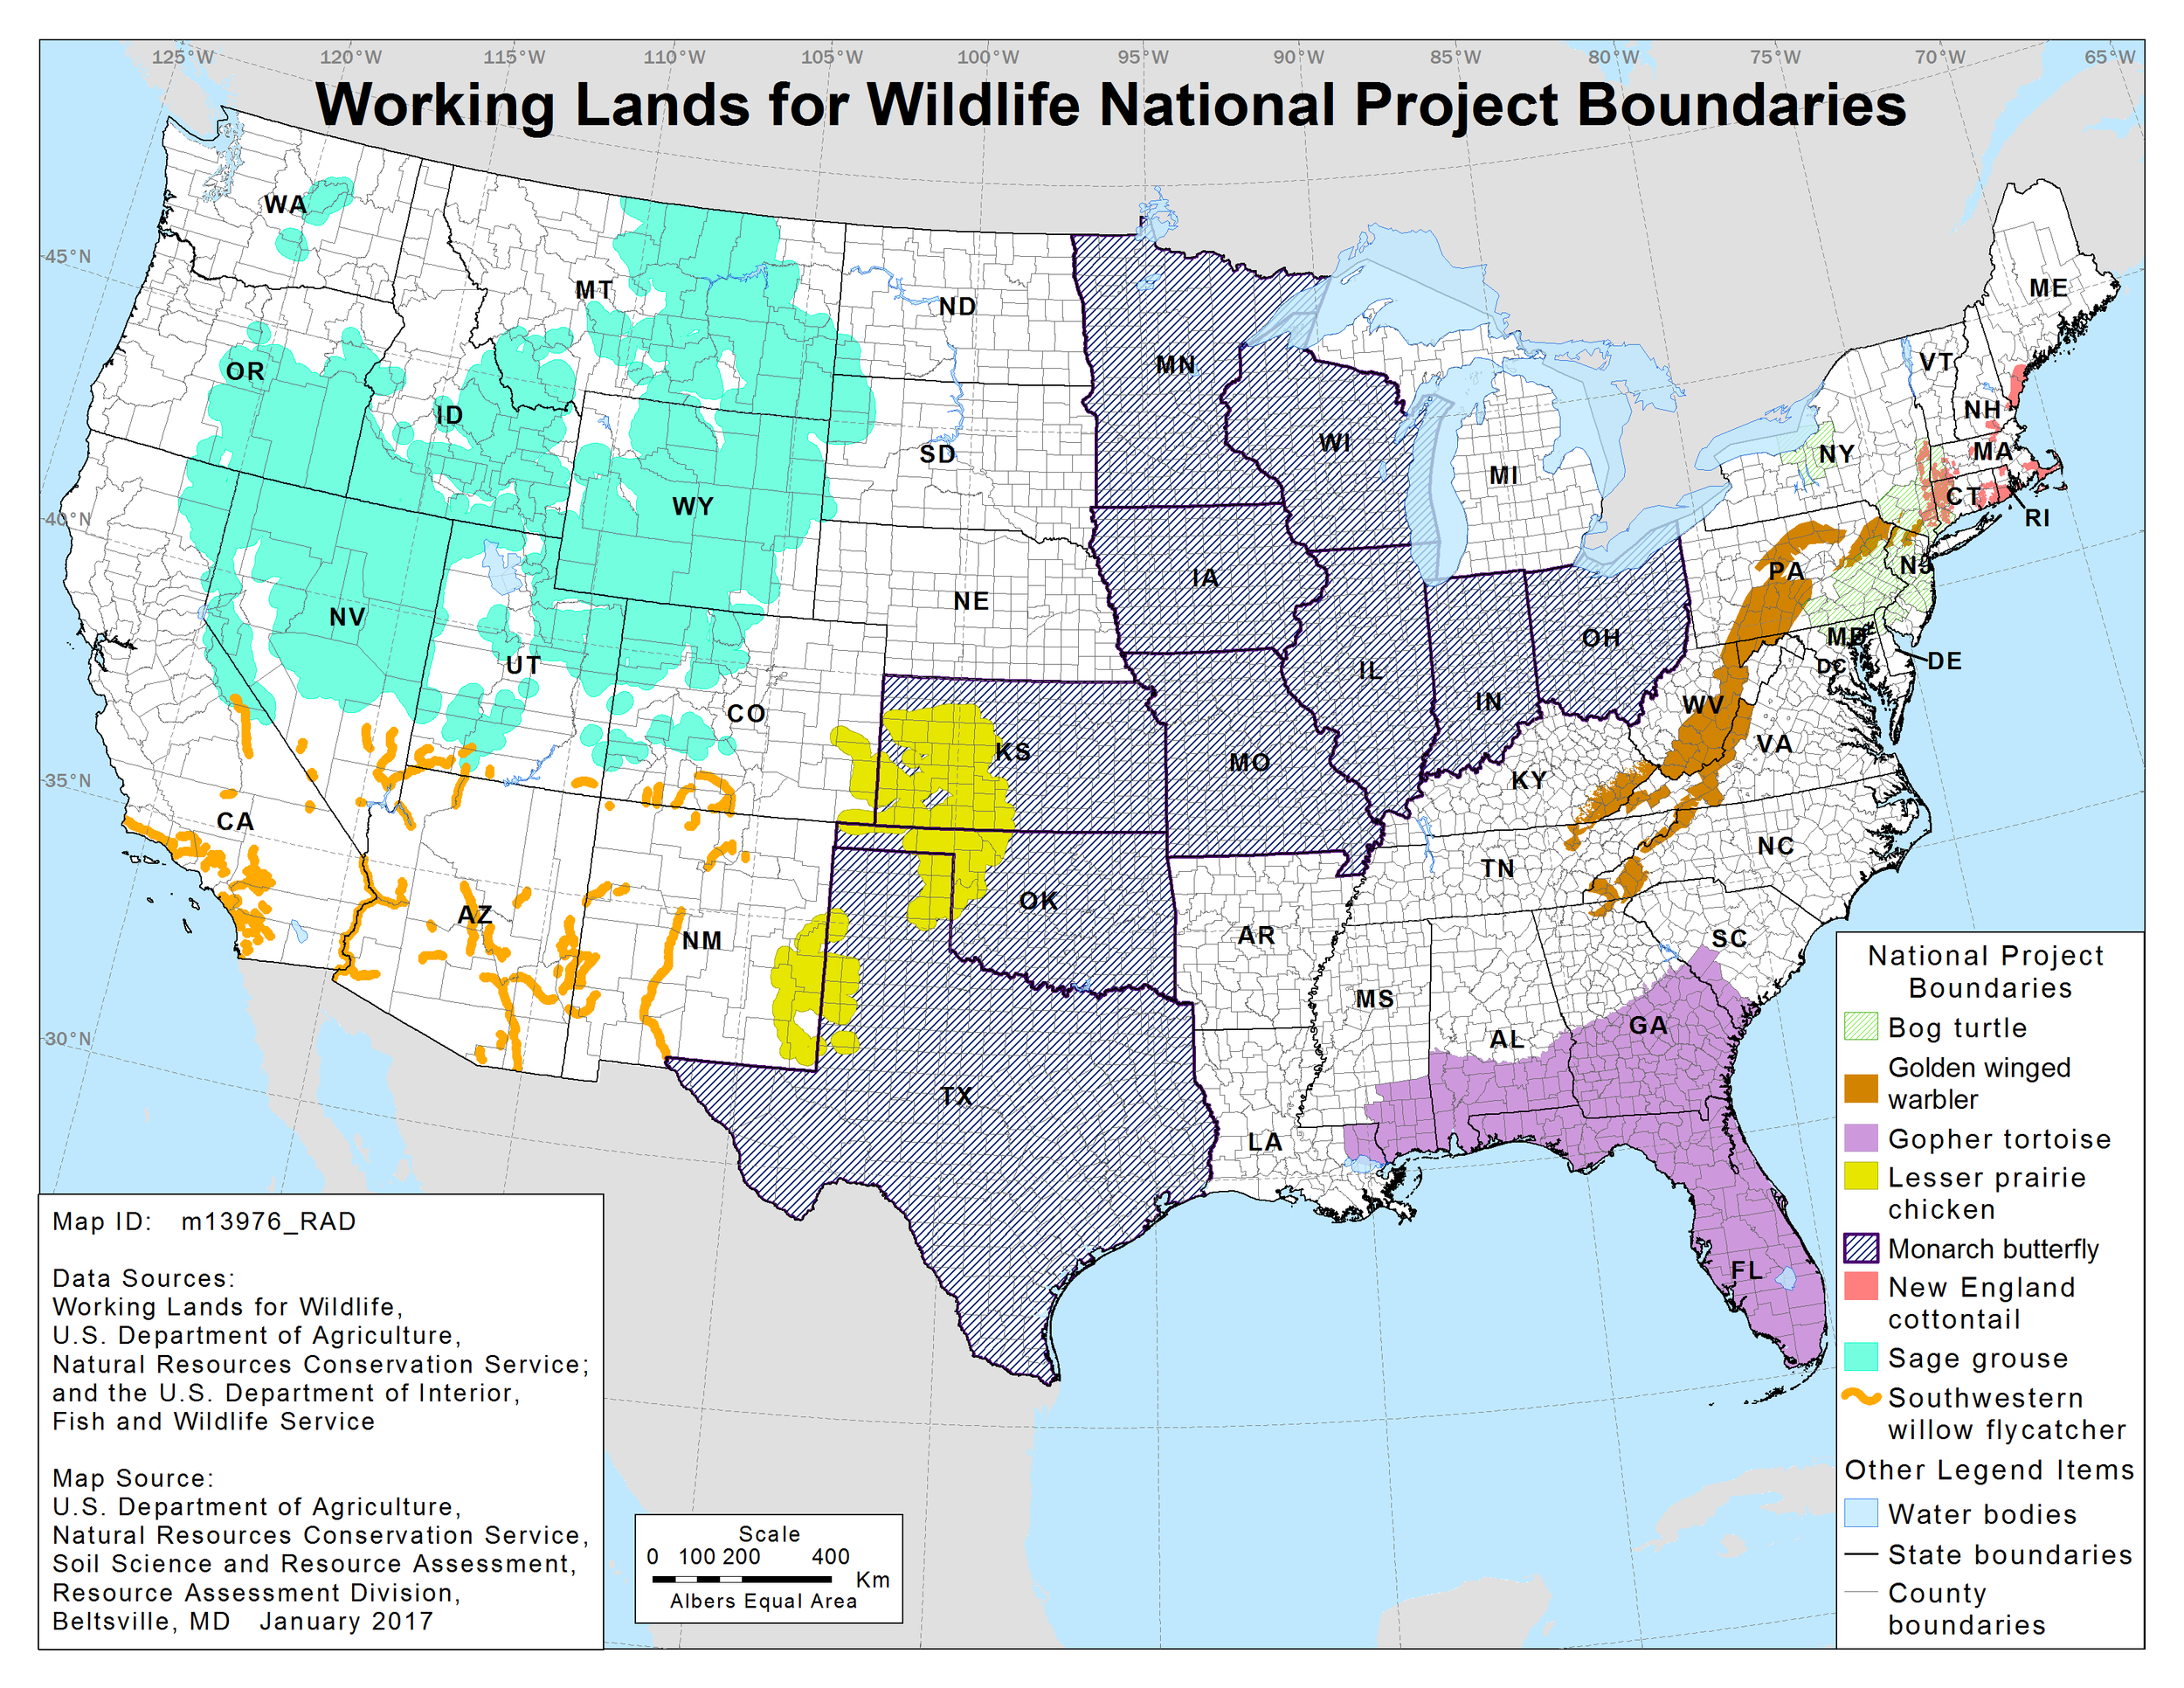 Map 1.  President Obama's USDA Natural Resources Conservation Service has identified several imperiled species upon which it is concentrating conservation efforts available under the farm bill.  Source: USDA NRCS.